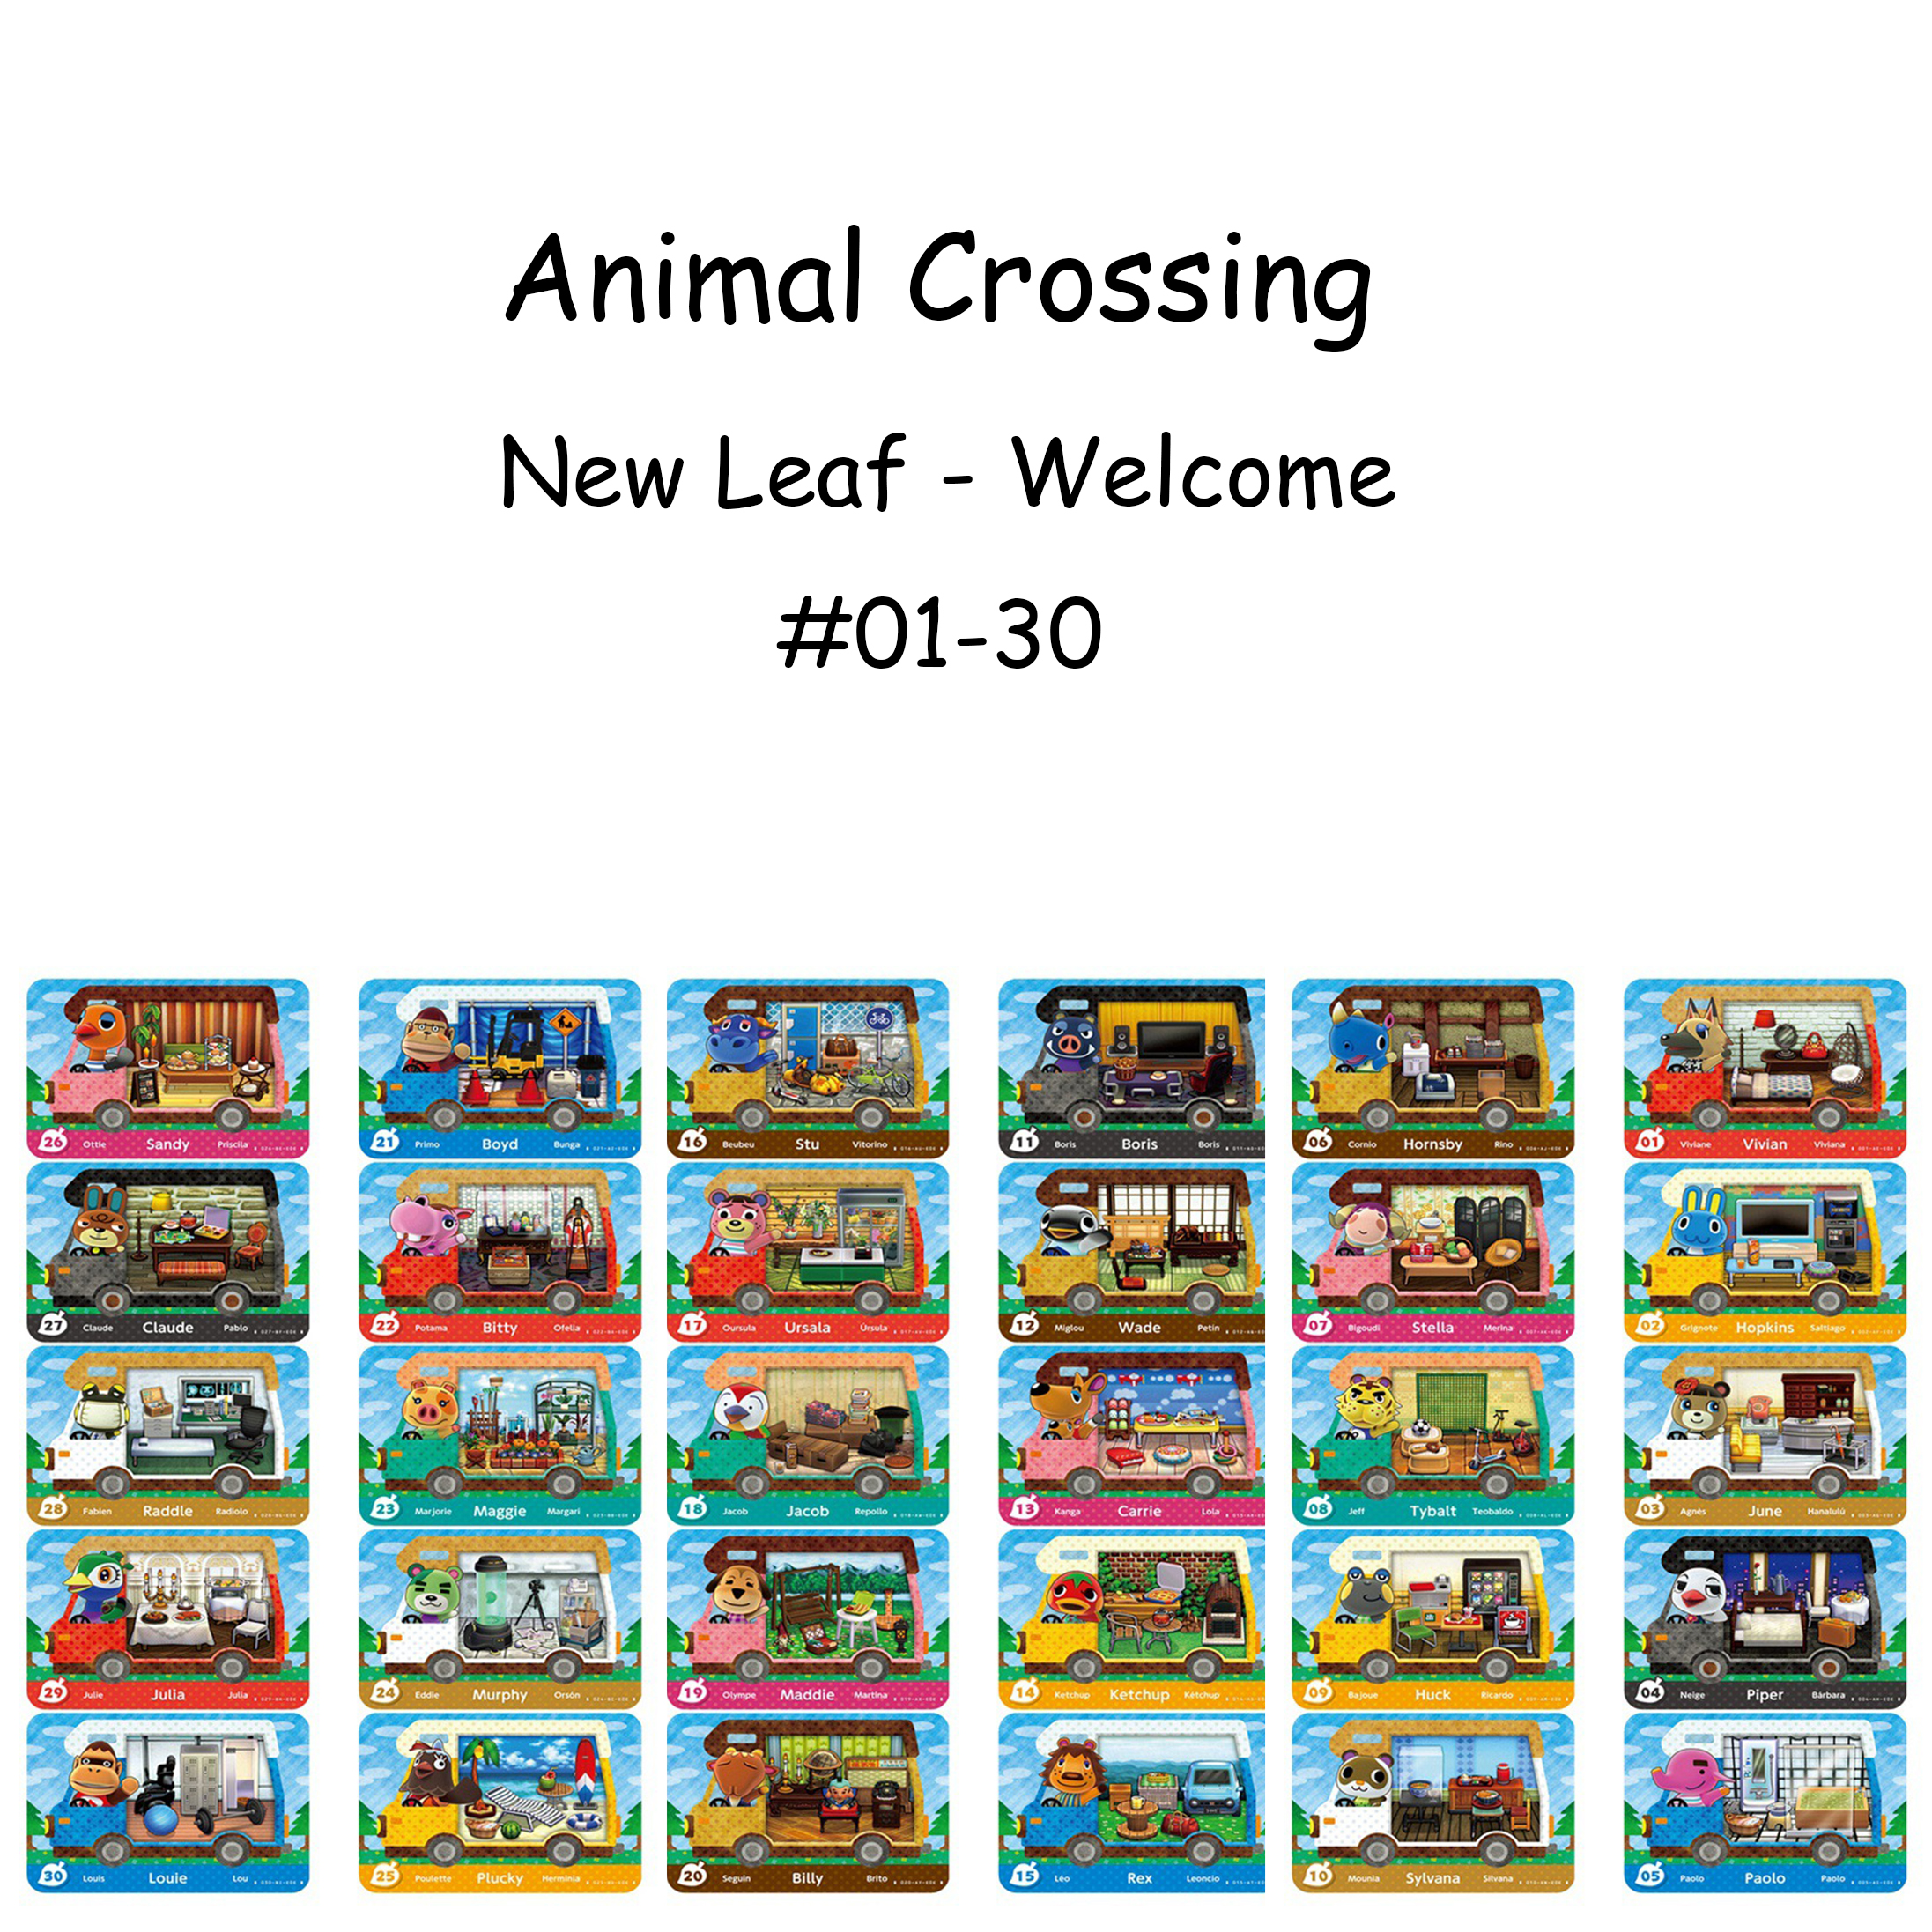 CV Car Animal Crossing <font><b>Card</b></font> New Leaf Welcome <font><b>Amiibo</b></font> Ketchup Car <font><b>Card</b></font> <font><b>NFC</b></font> For <font><b>Switch</b></font> NS Animal Crossing <font><b>Amiibo</b></font> Car <font><b>Card</b></font> (01-30) image